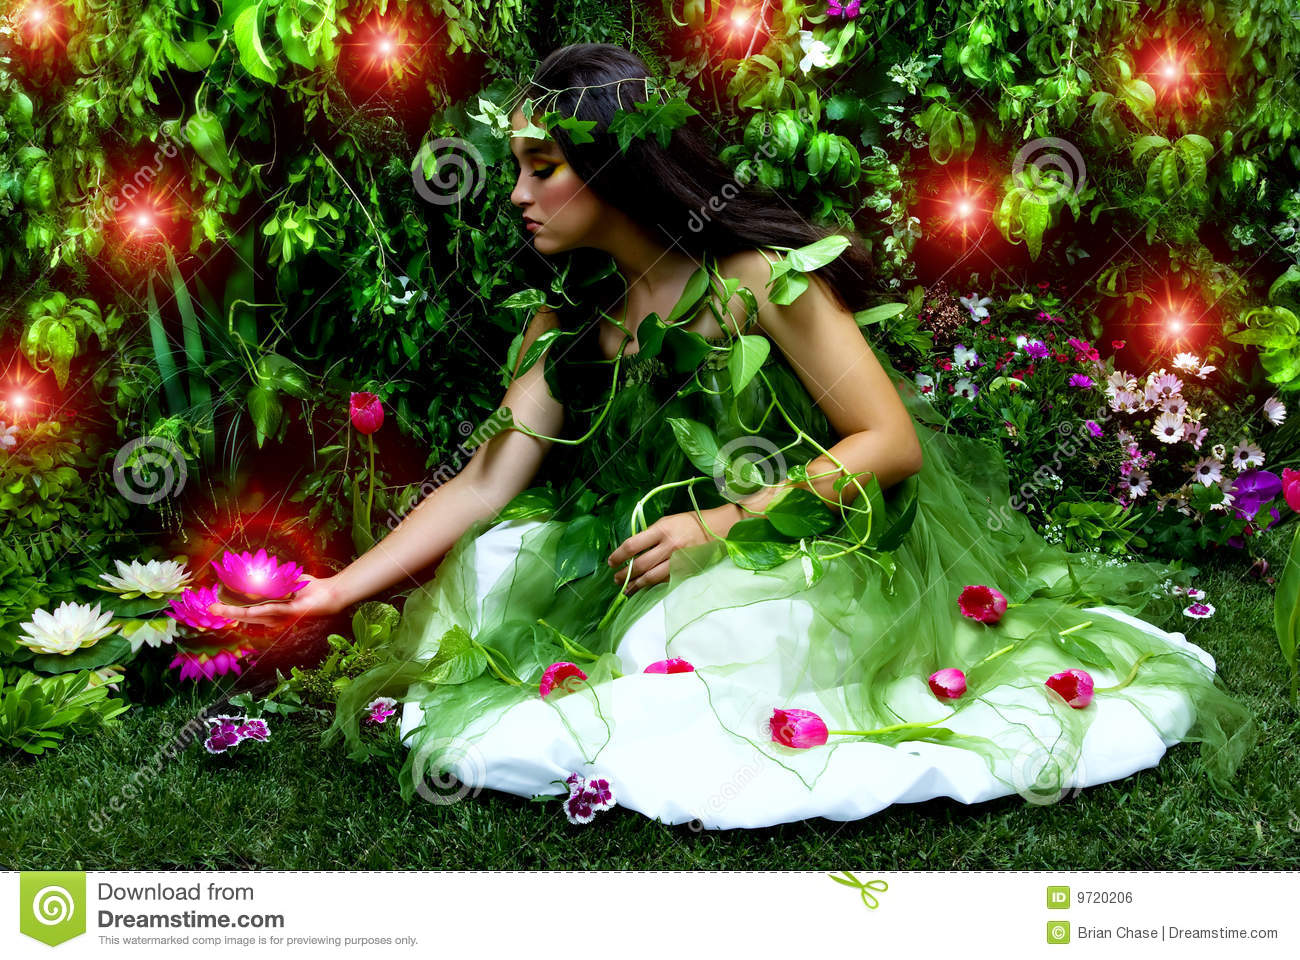 Enchanted Garden Royalty Free Stock Image  Image 9720206